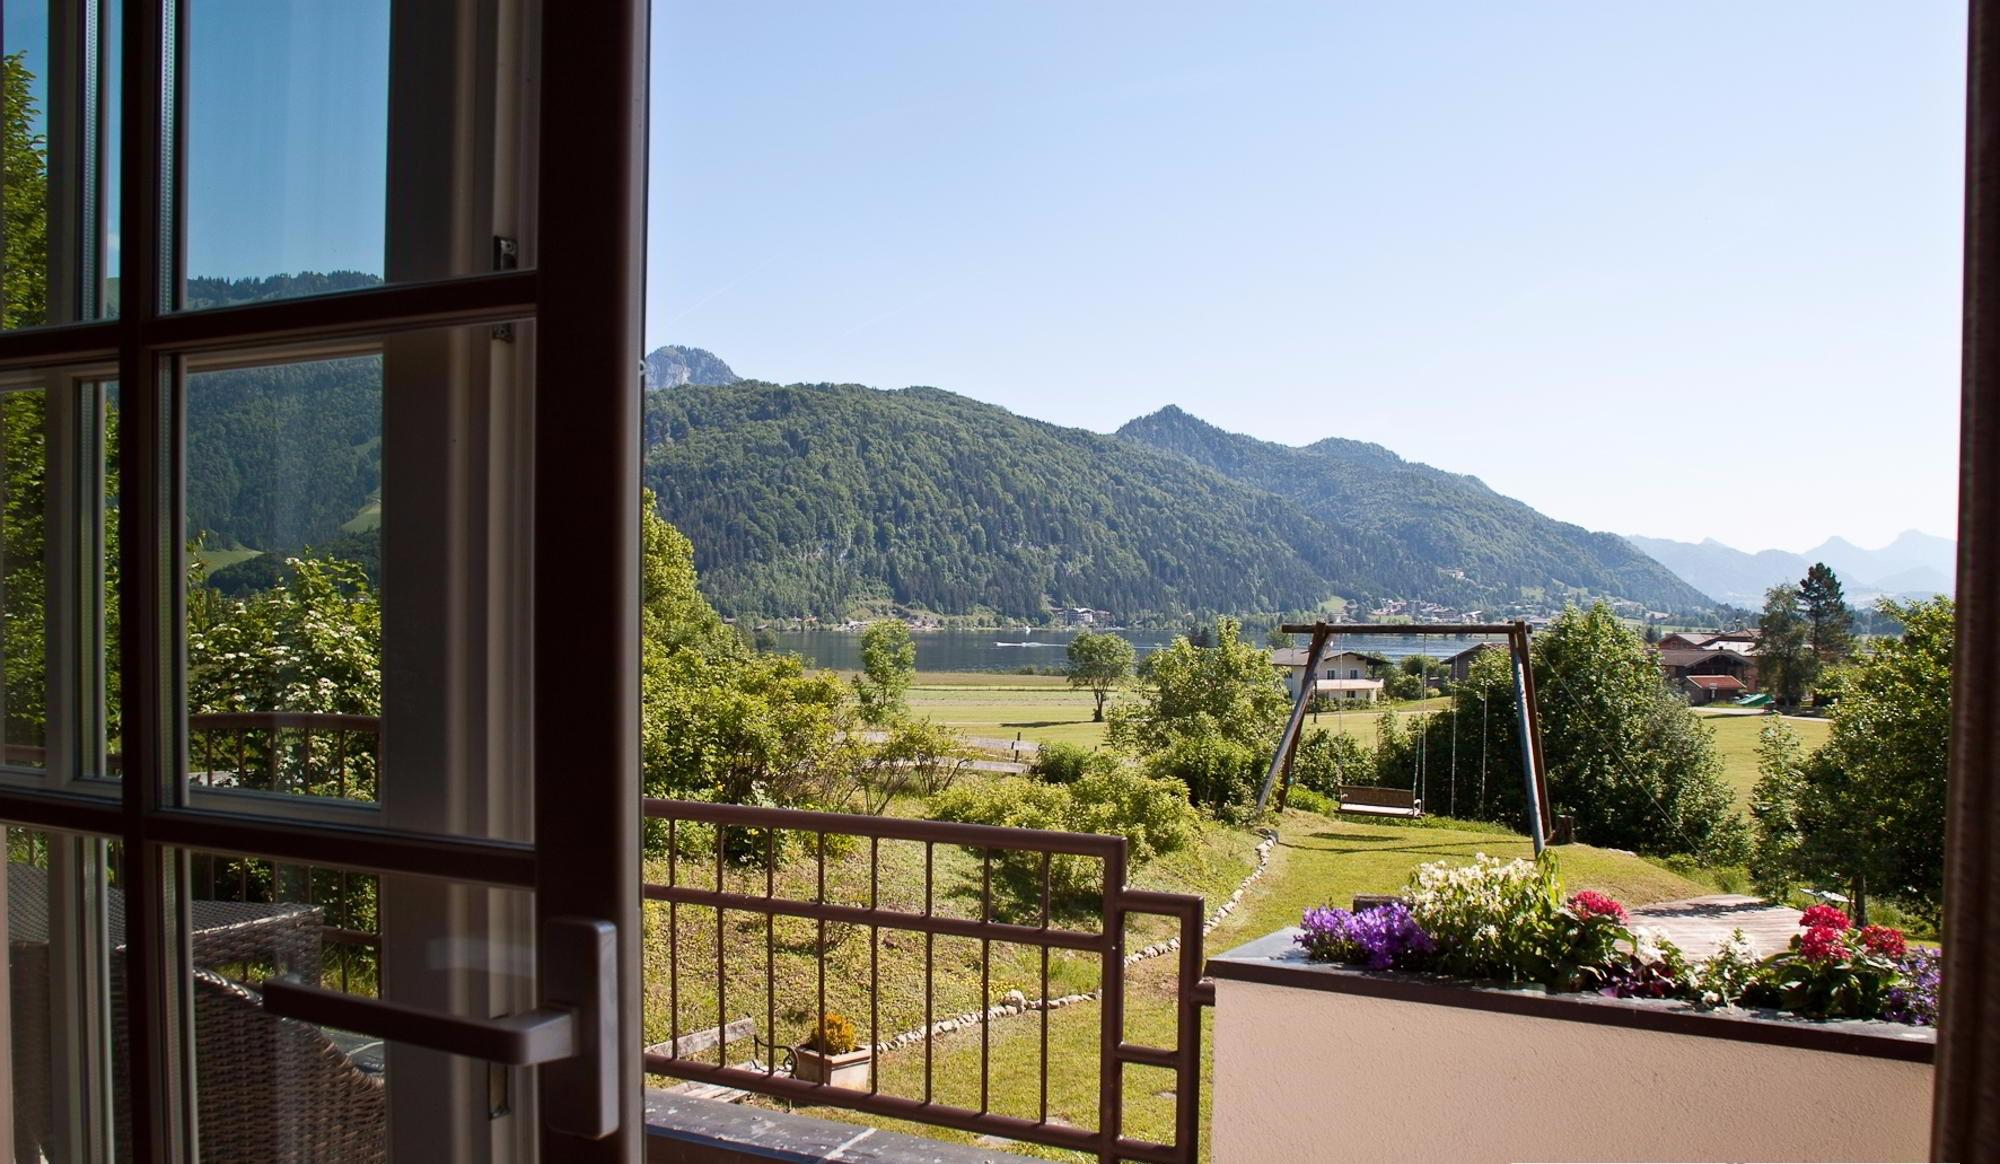 Comfortable country villa with a lake view in village of Walchsee